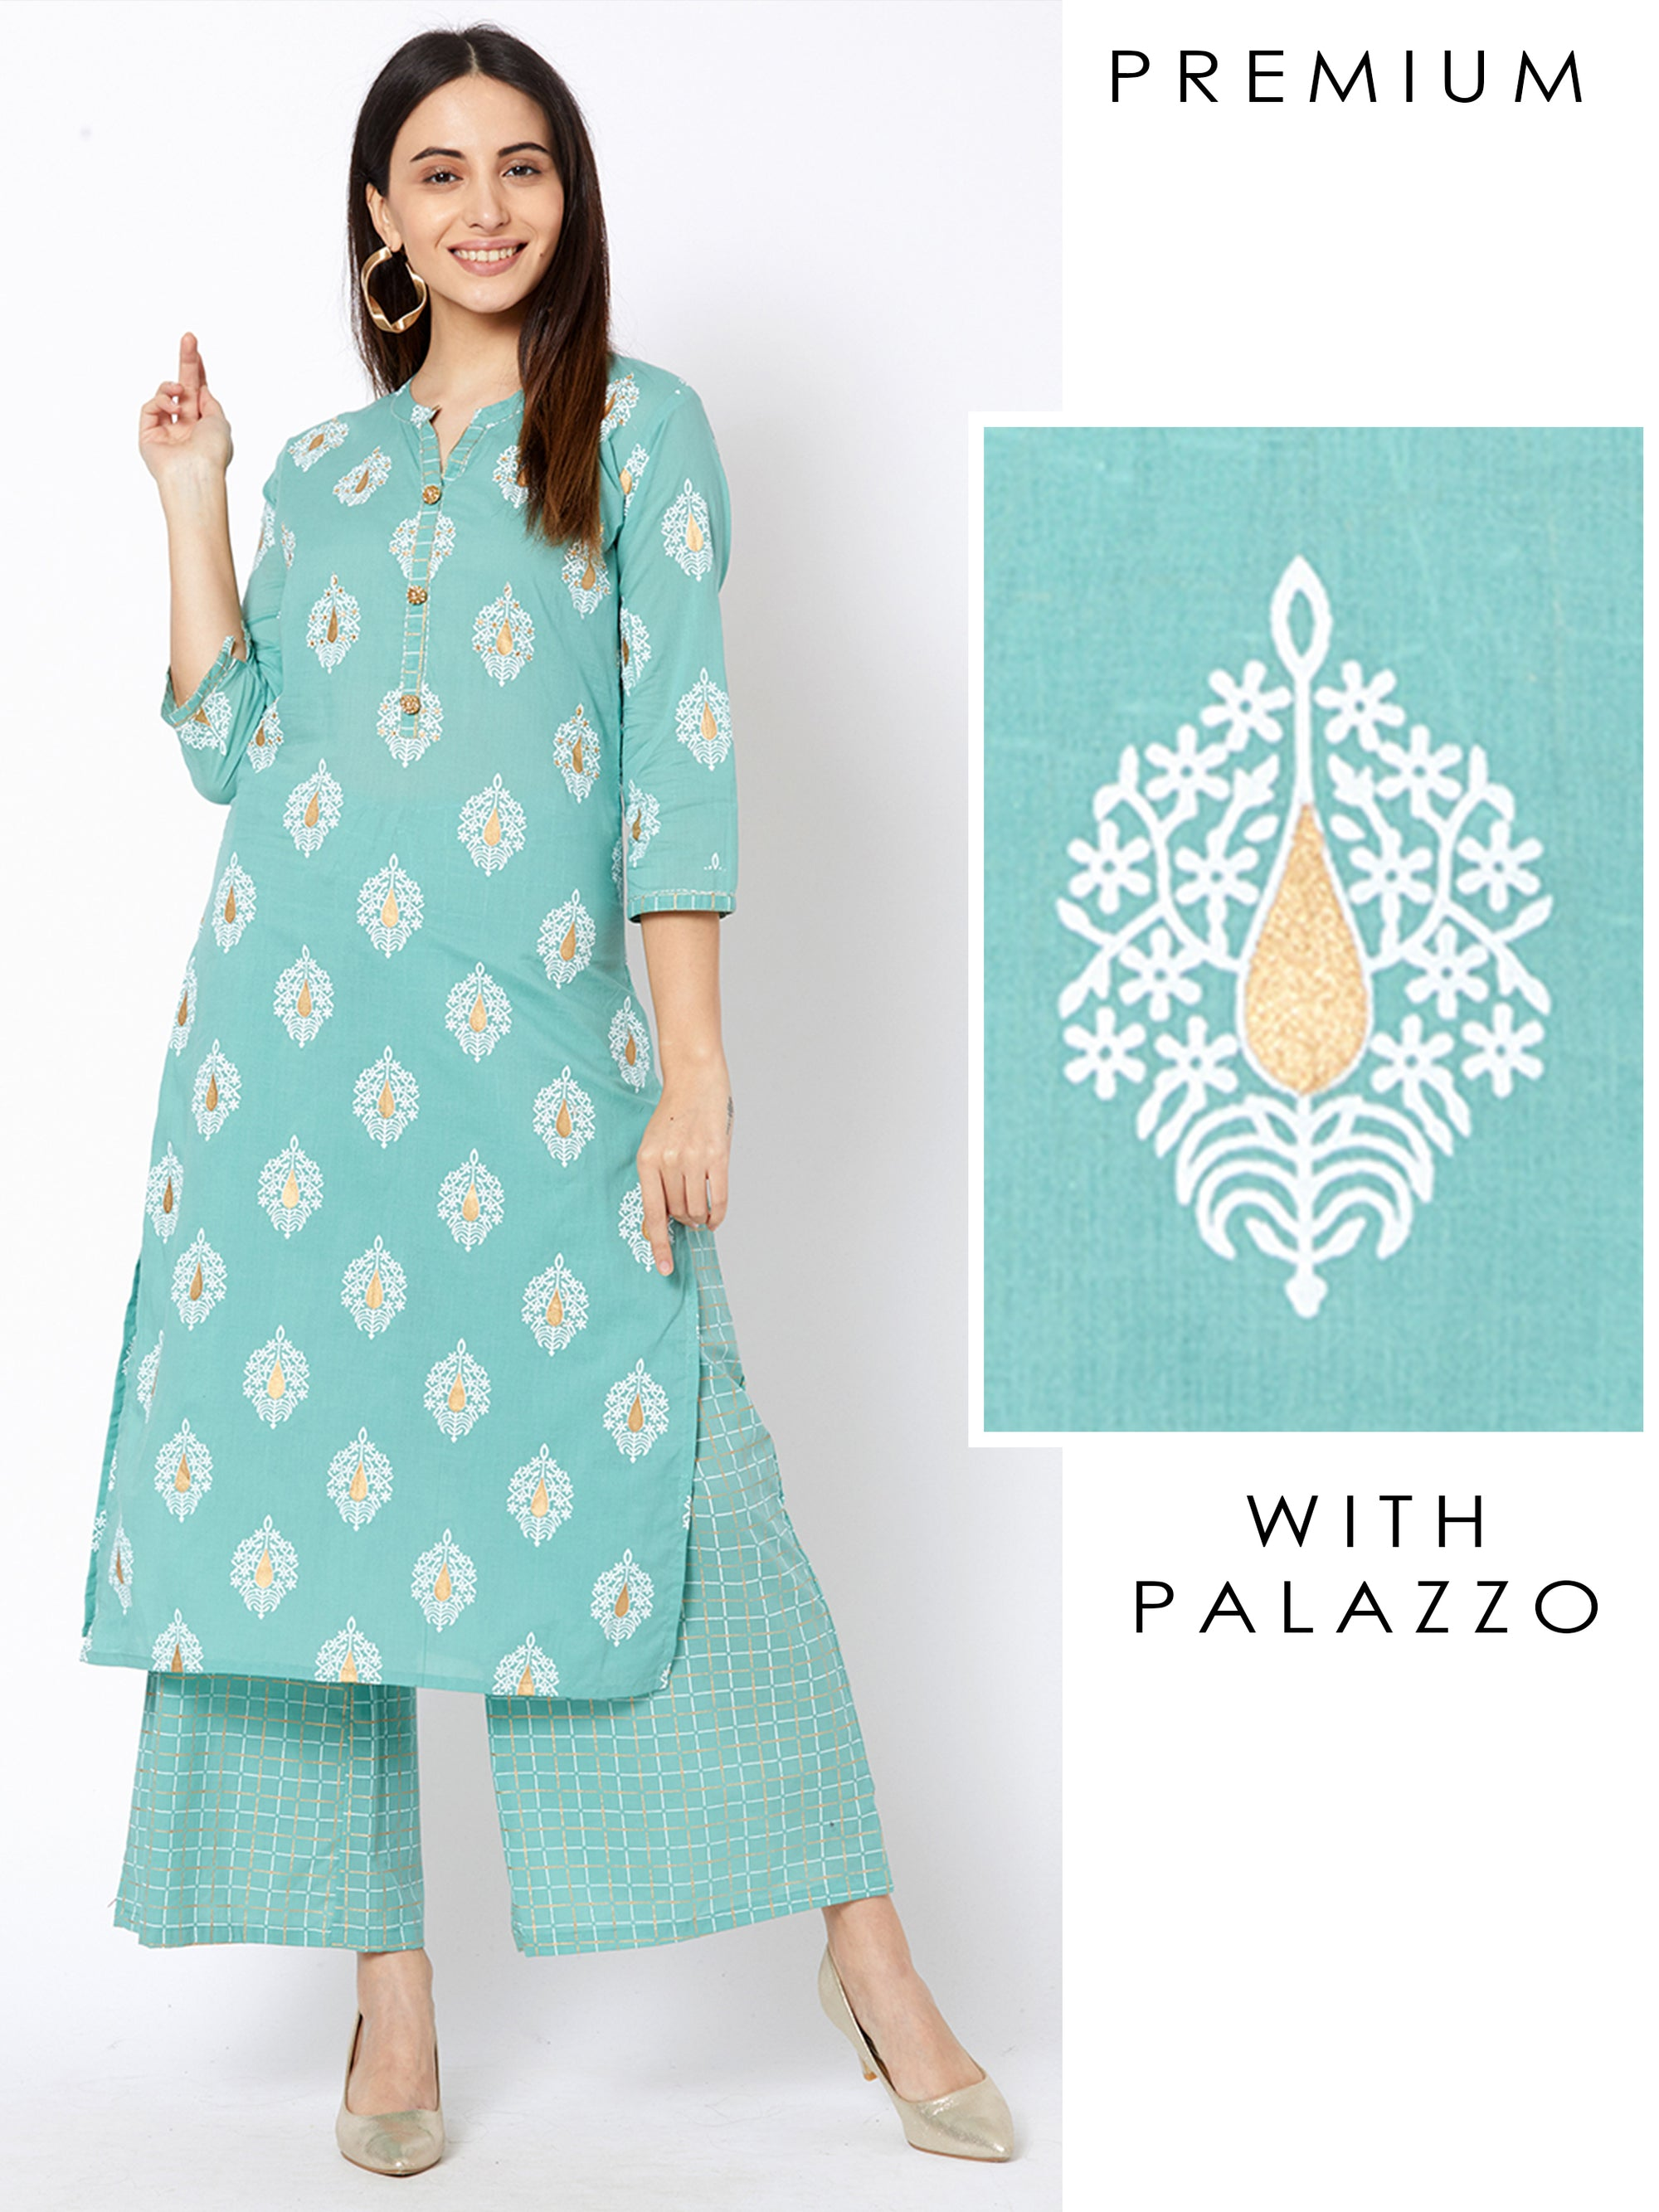 Floral Motif Printed Kurta with Pin Checkered Palazzo – Aqua Blue